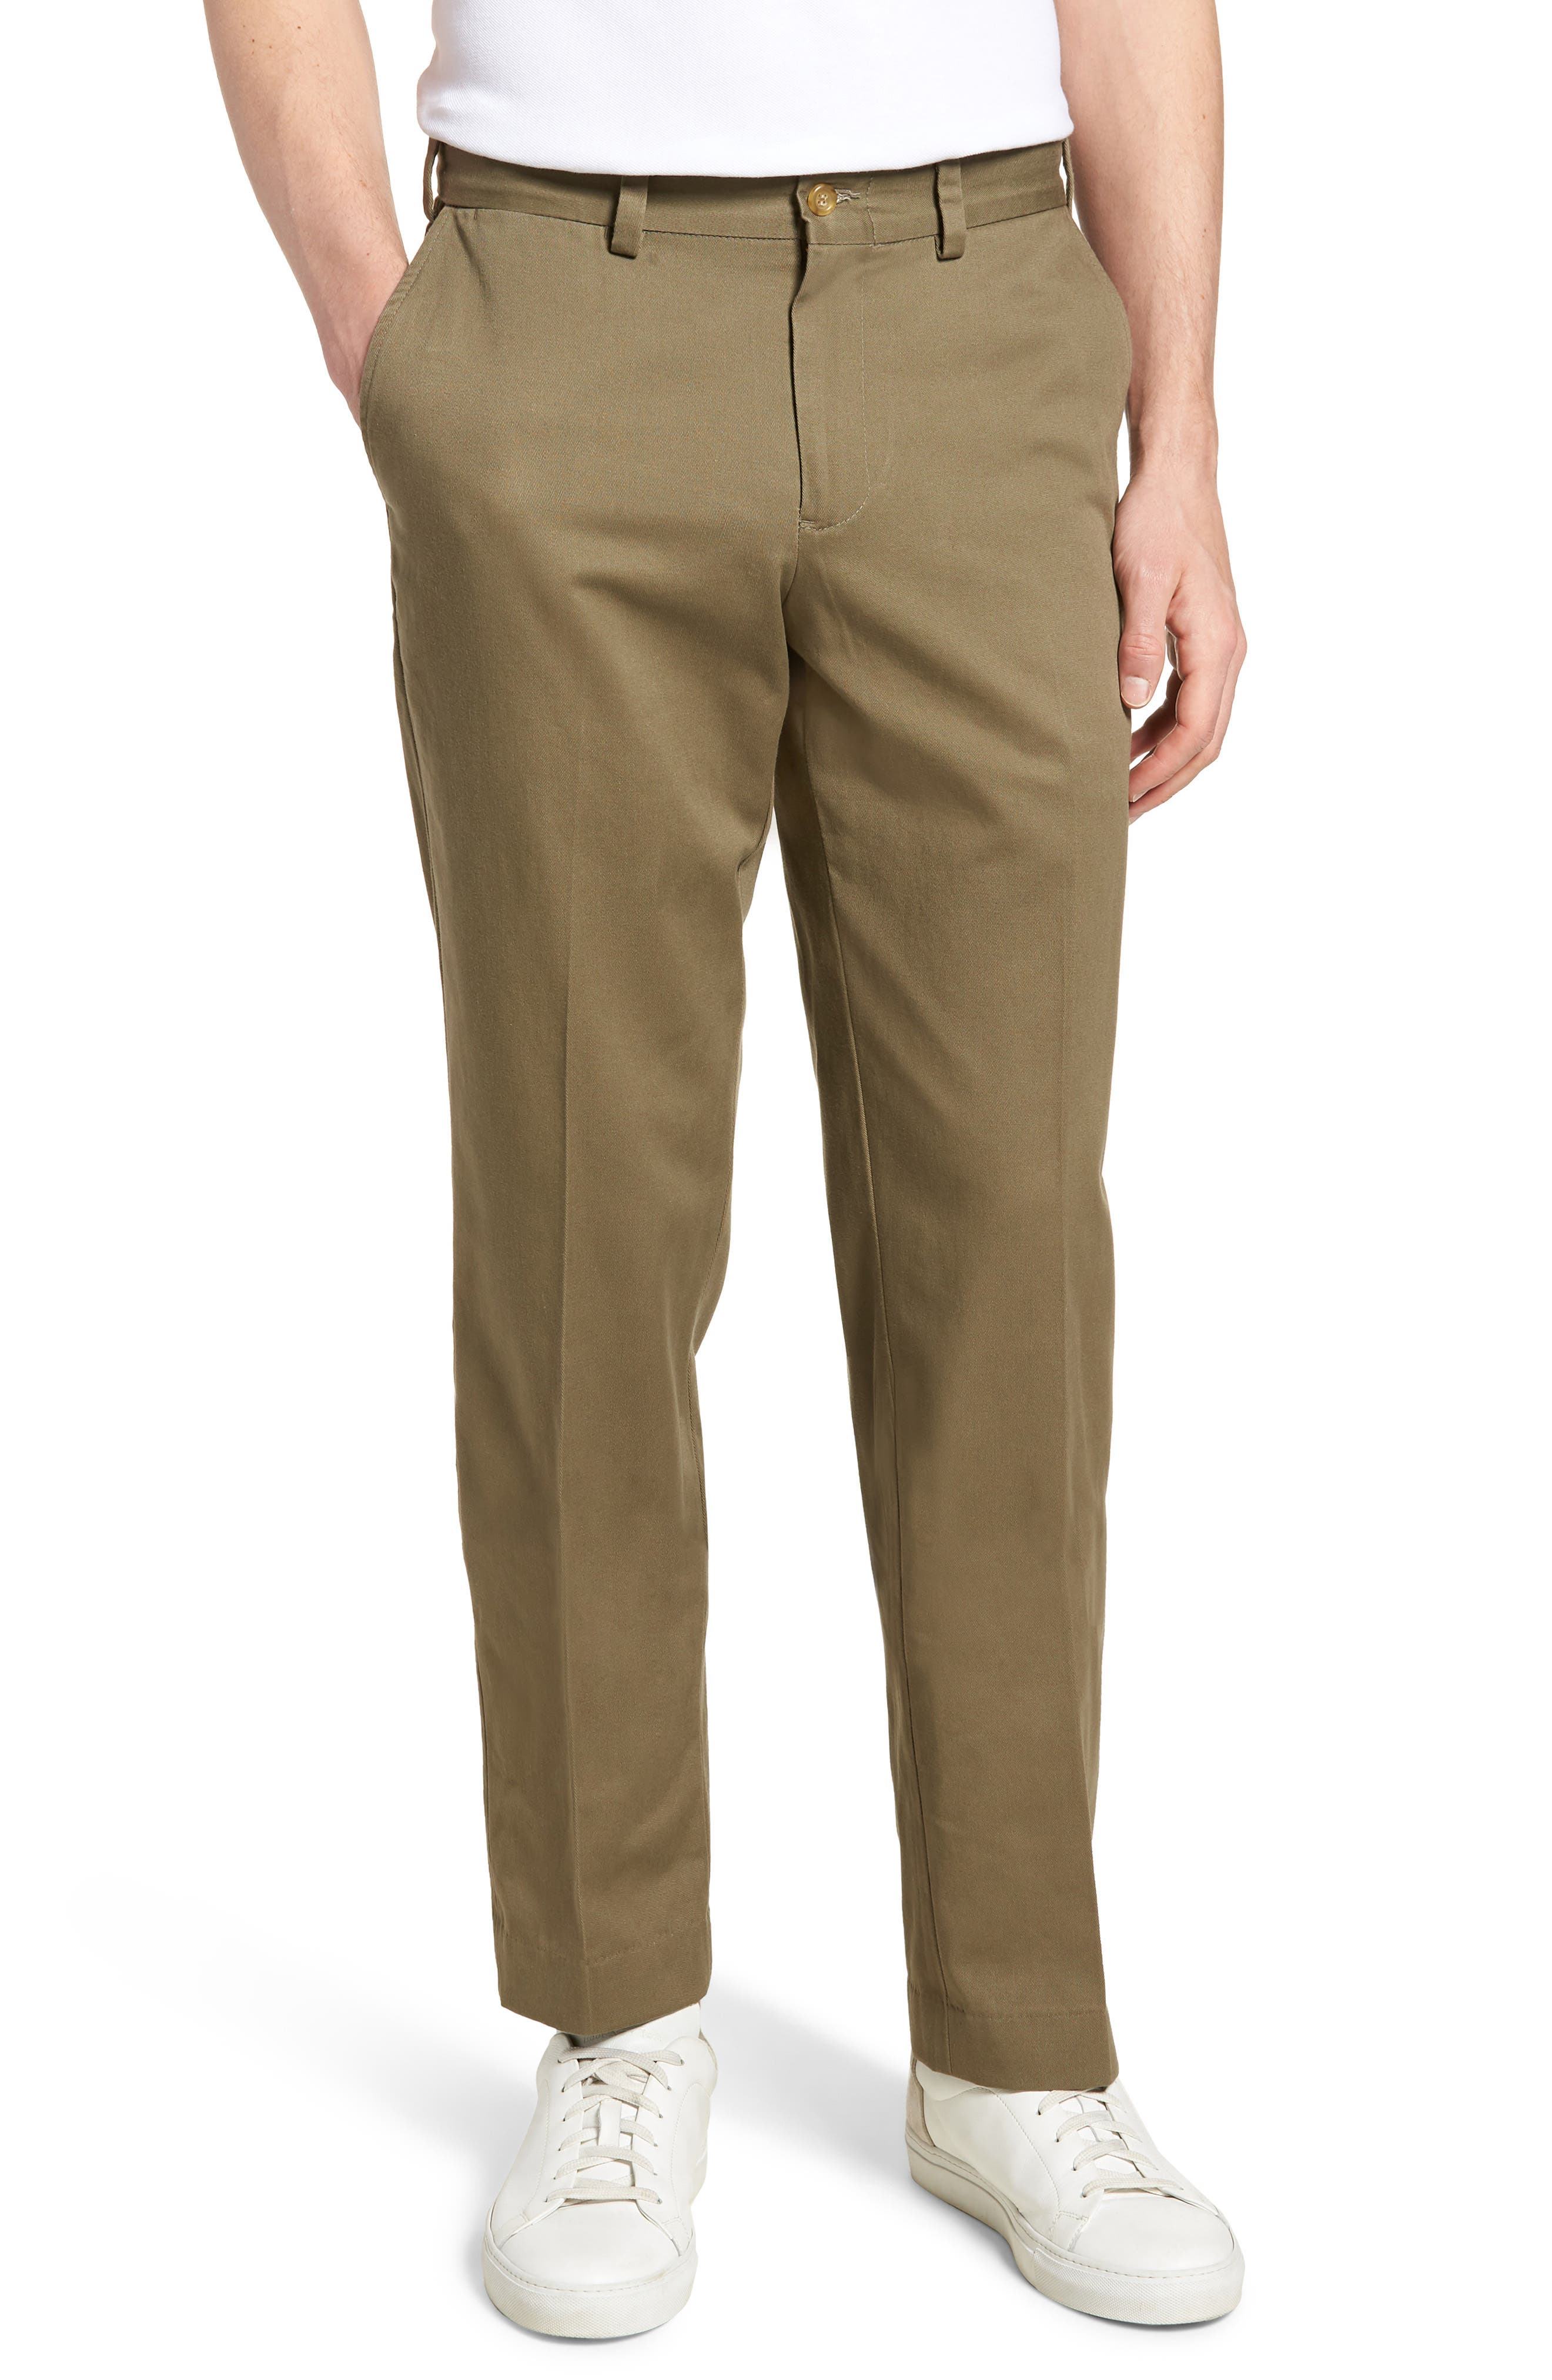 M3 Straight Fit Flat Front Vintage Twill Pants,                         Main,                         color, Olive